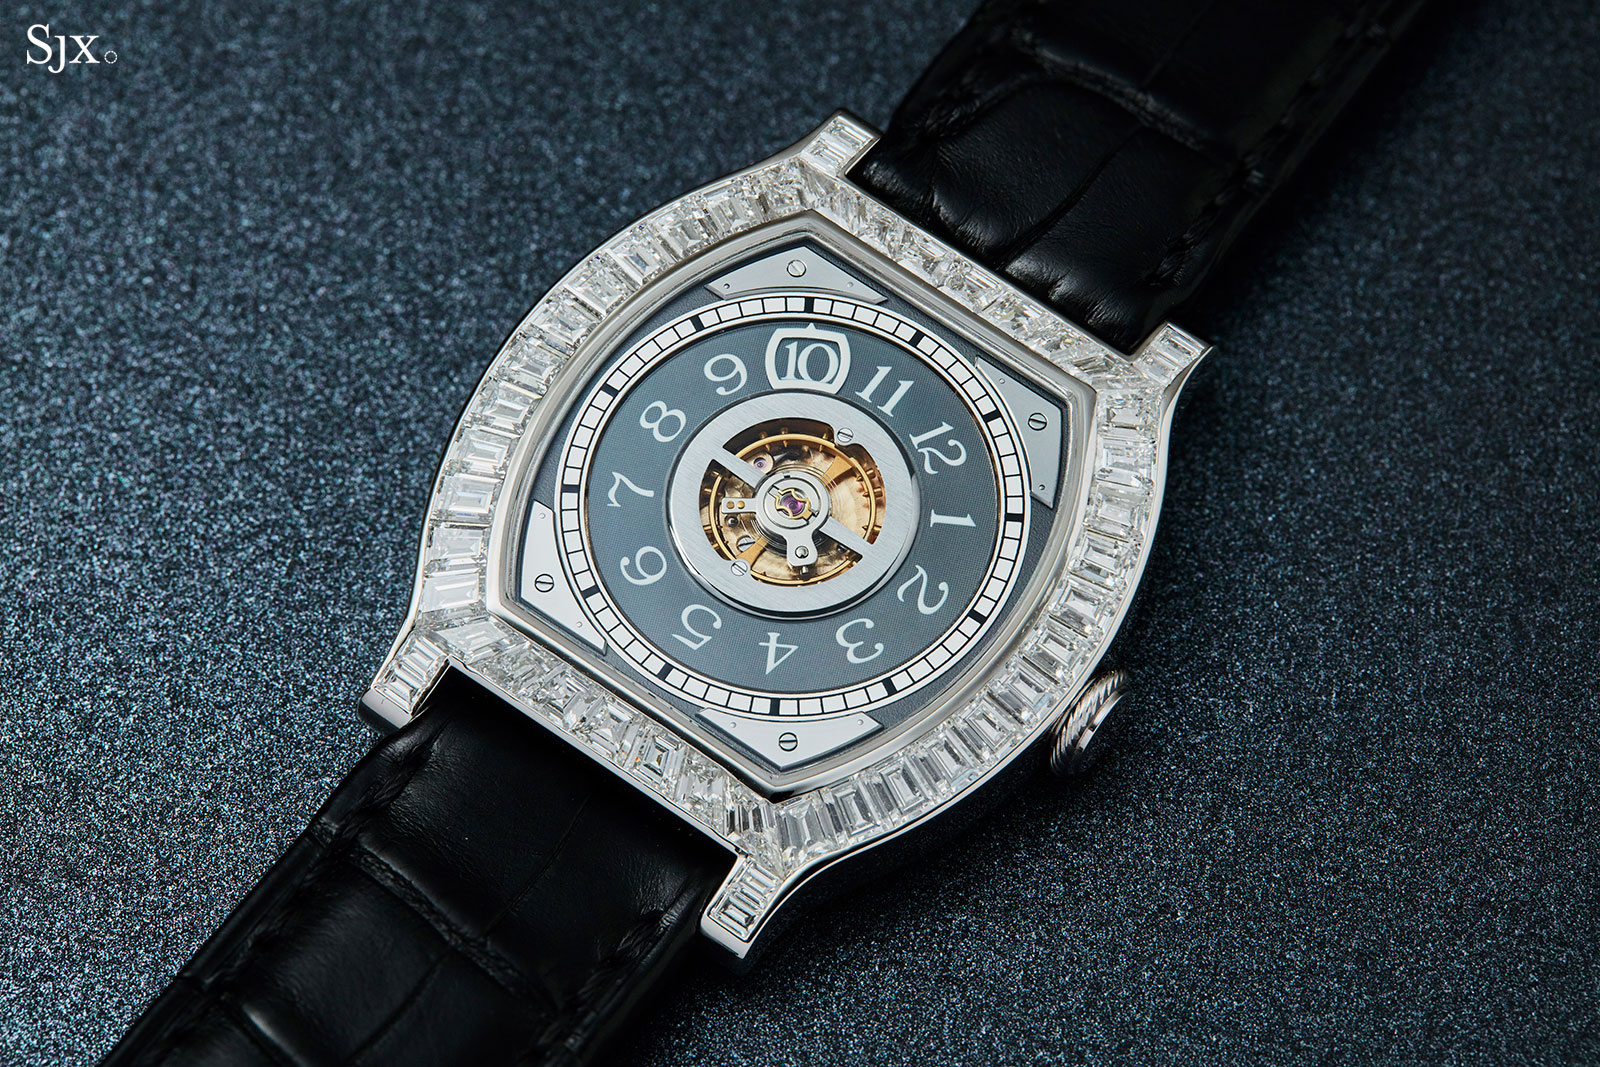 FP Journe Vagabondage I diamonds 3